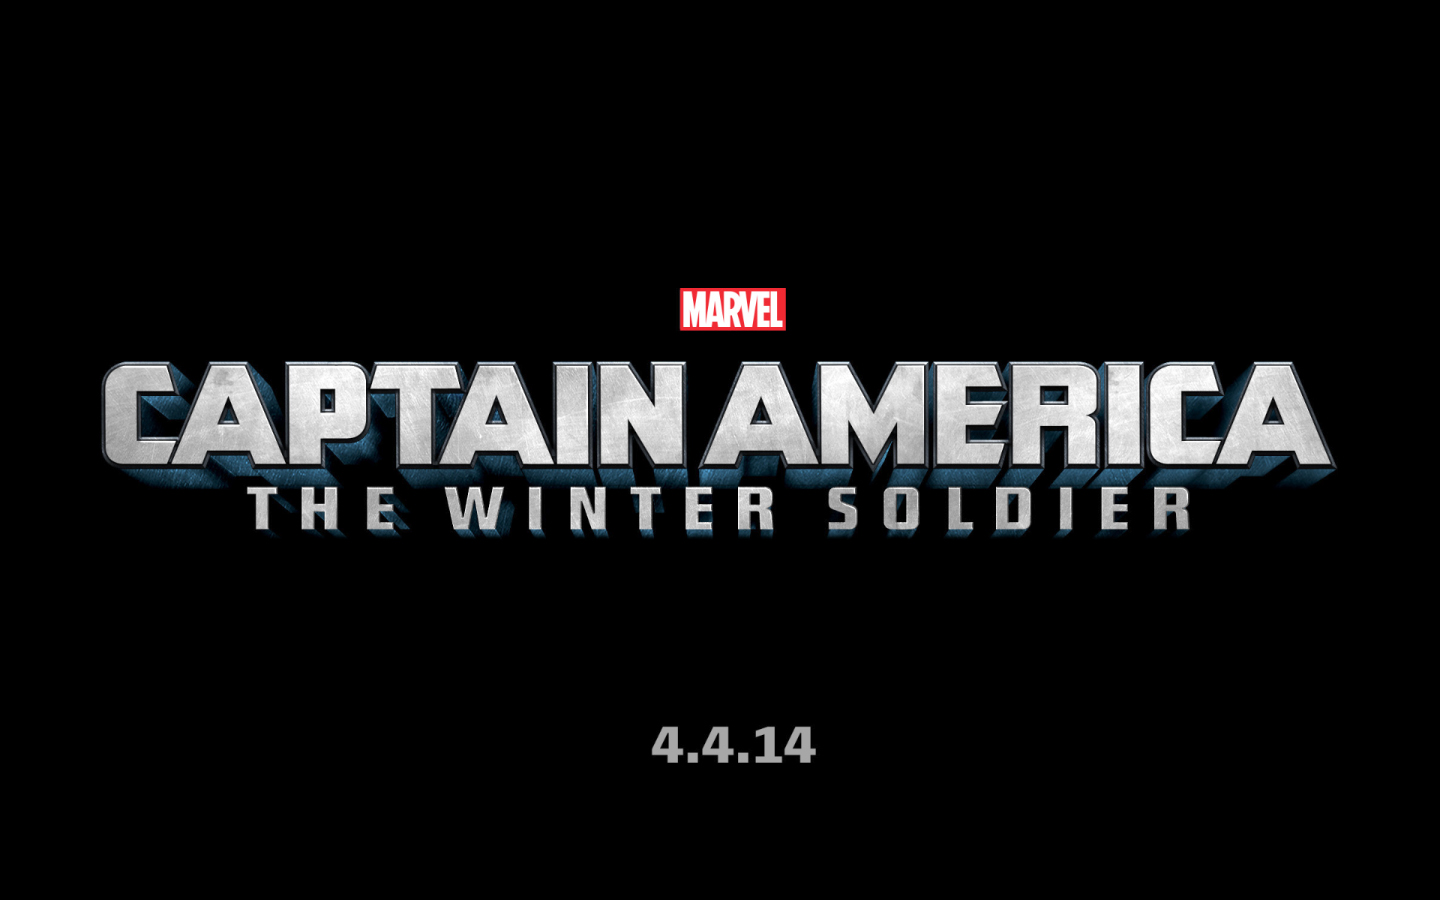 capitan america 2 winter soldier